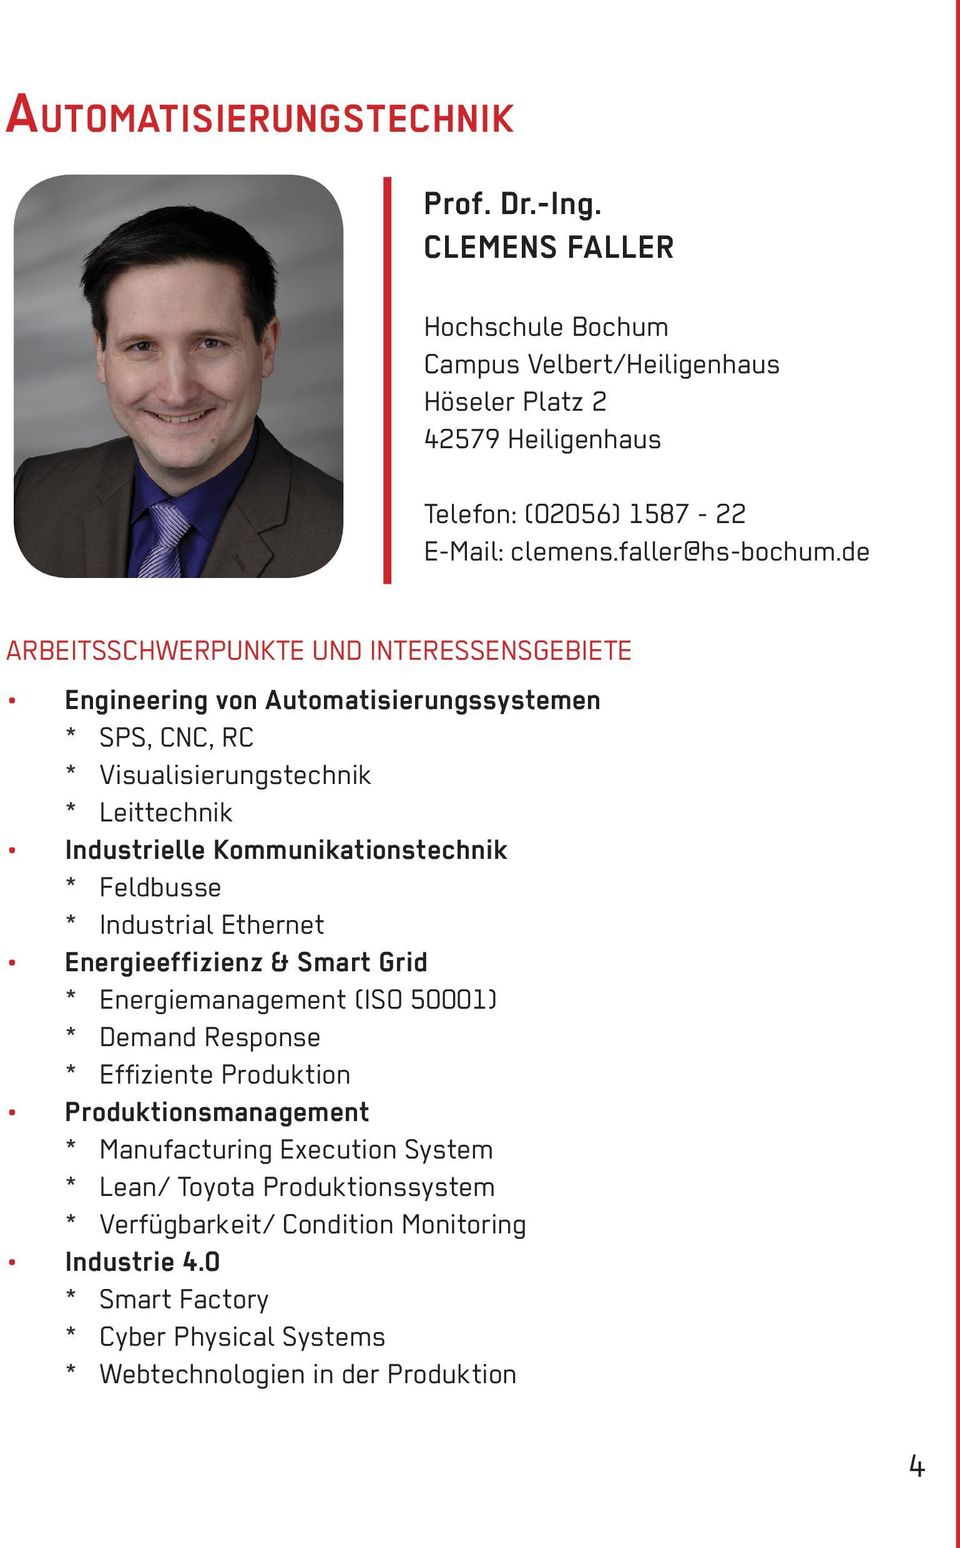 Industrial Ethernet Energieeffizienz & Smart Grid * Energiemanagement (ISO 50001) * Demand Response * Effiziente Produktion Produktionsmanagement *